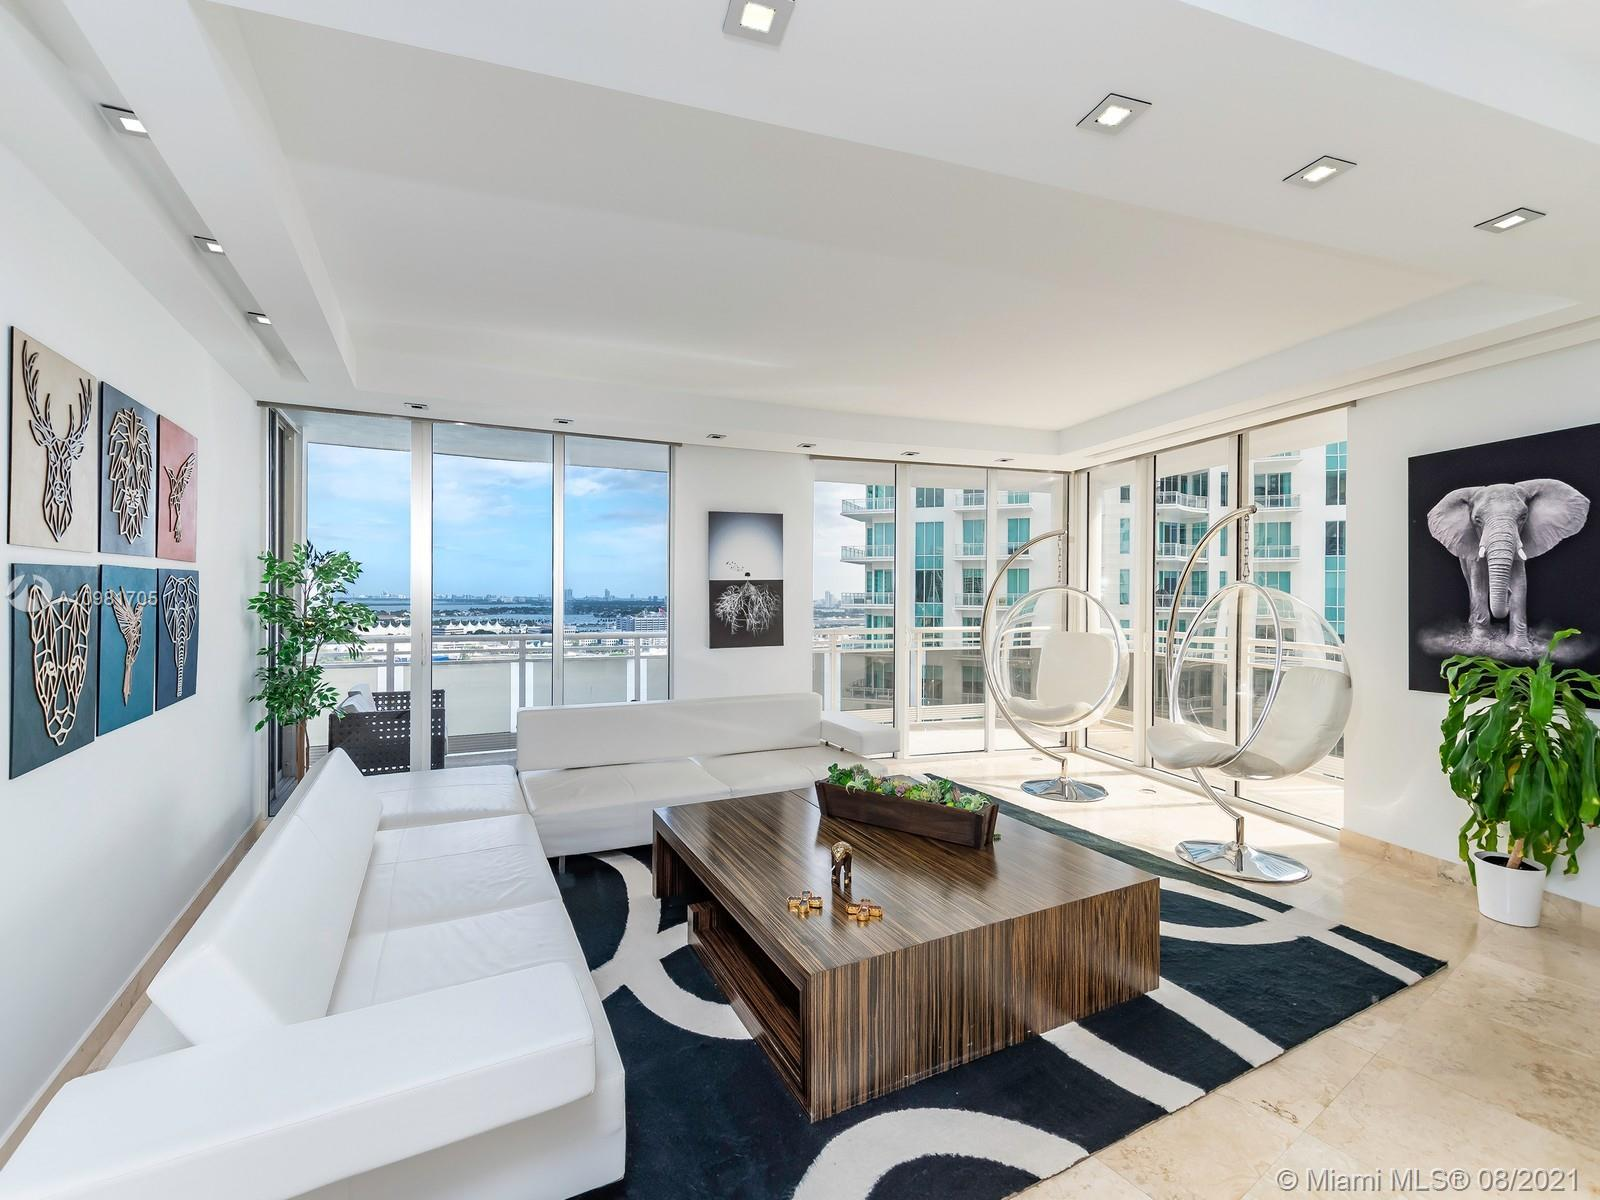 Enjoy your own Private Oasis in this Lower PH of Carbonell located in Brickell Key, stay in the heart of Miami while enjoying all the serenity of a gated island community. This spacious 2,860 lower PH features 4 spacious bedrooms all with their own ensuite bathrooms and closets. Offering the ideal floorplan for a family, this unit is built for entertaining with a large family room, formal